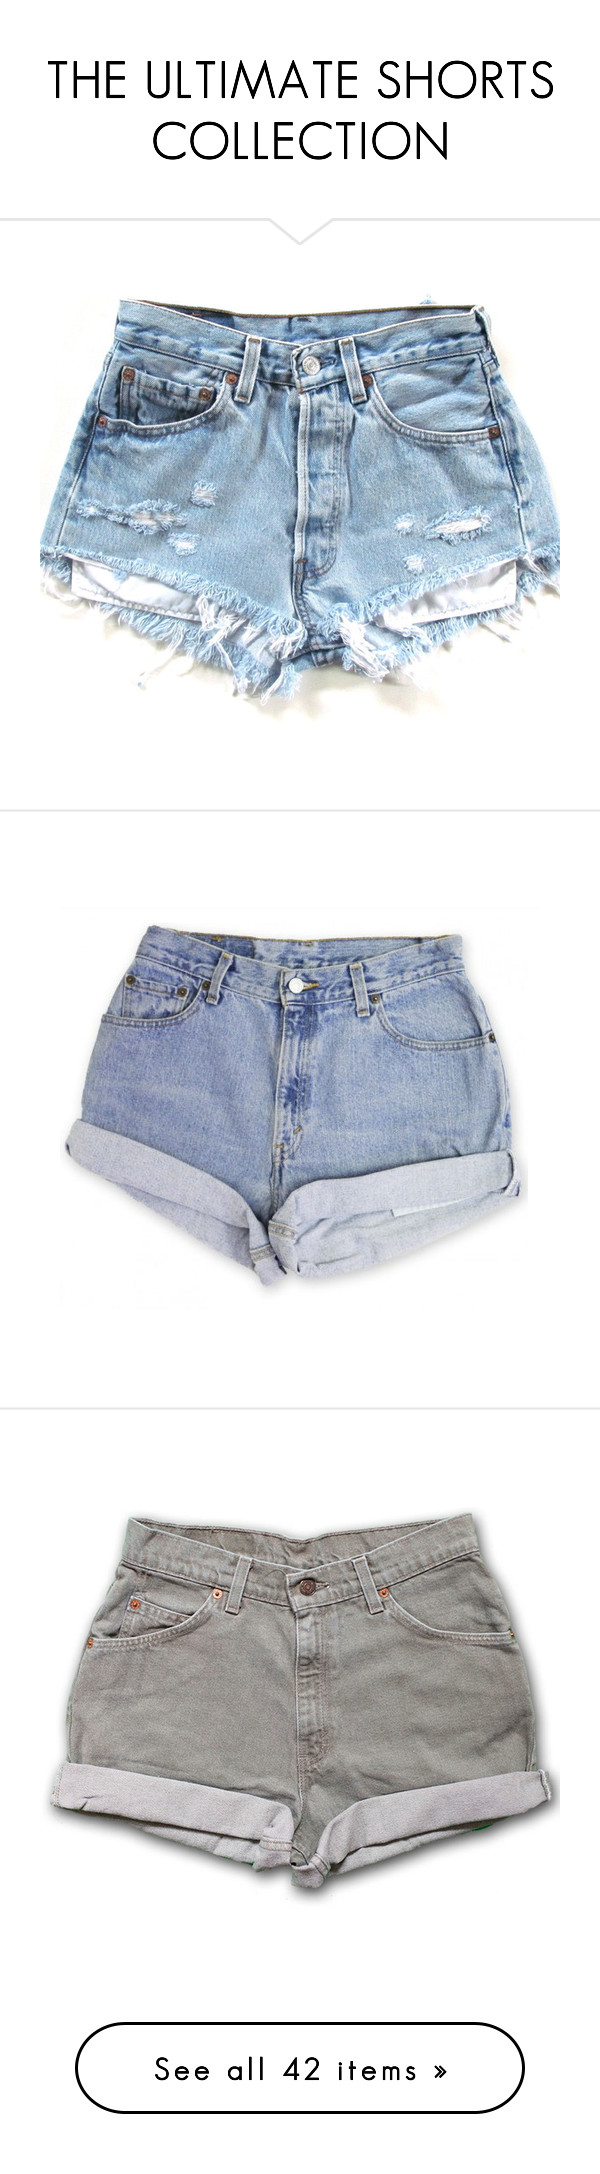 """""""THE ULTIMATE SHORTS COLLECTION"""" by arianazzunicorn ❤ liked on Polyvore featuring shorts, bottoms, pants, short, high rise denim shorts, vintage high waisted shorts, denim short shorts, high-waisted shorts, denim shorts and high-waisted denim shorts"""